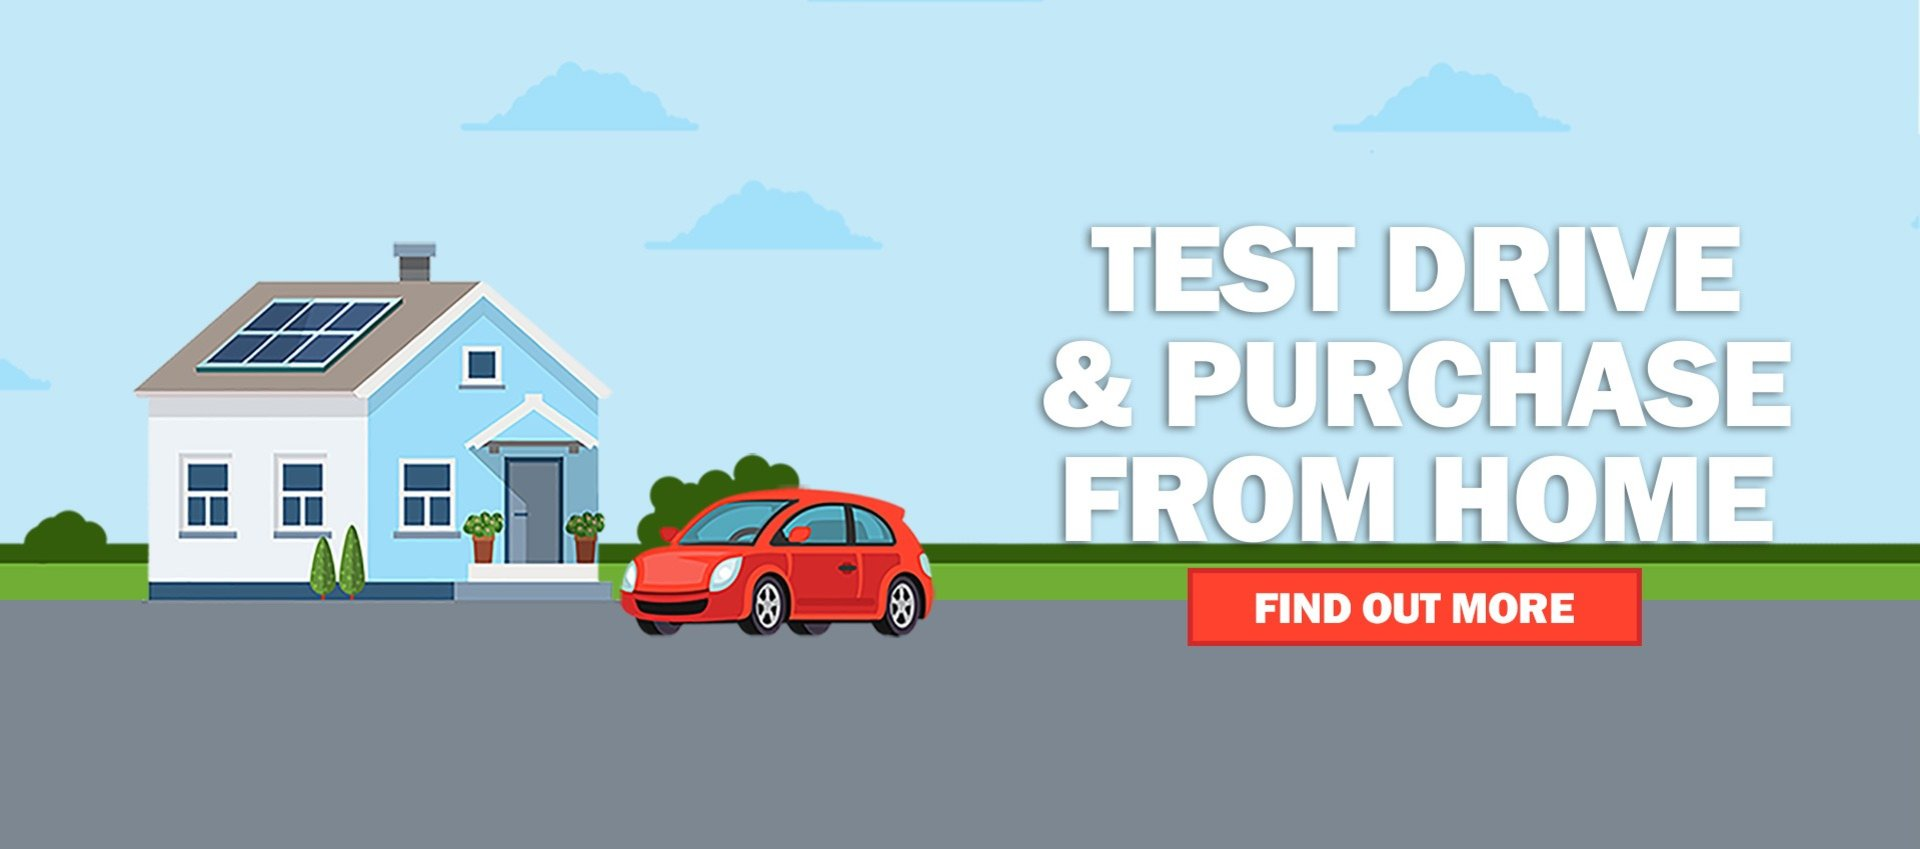 Test drive & purchase from home